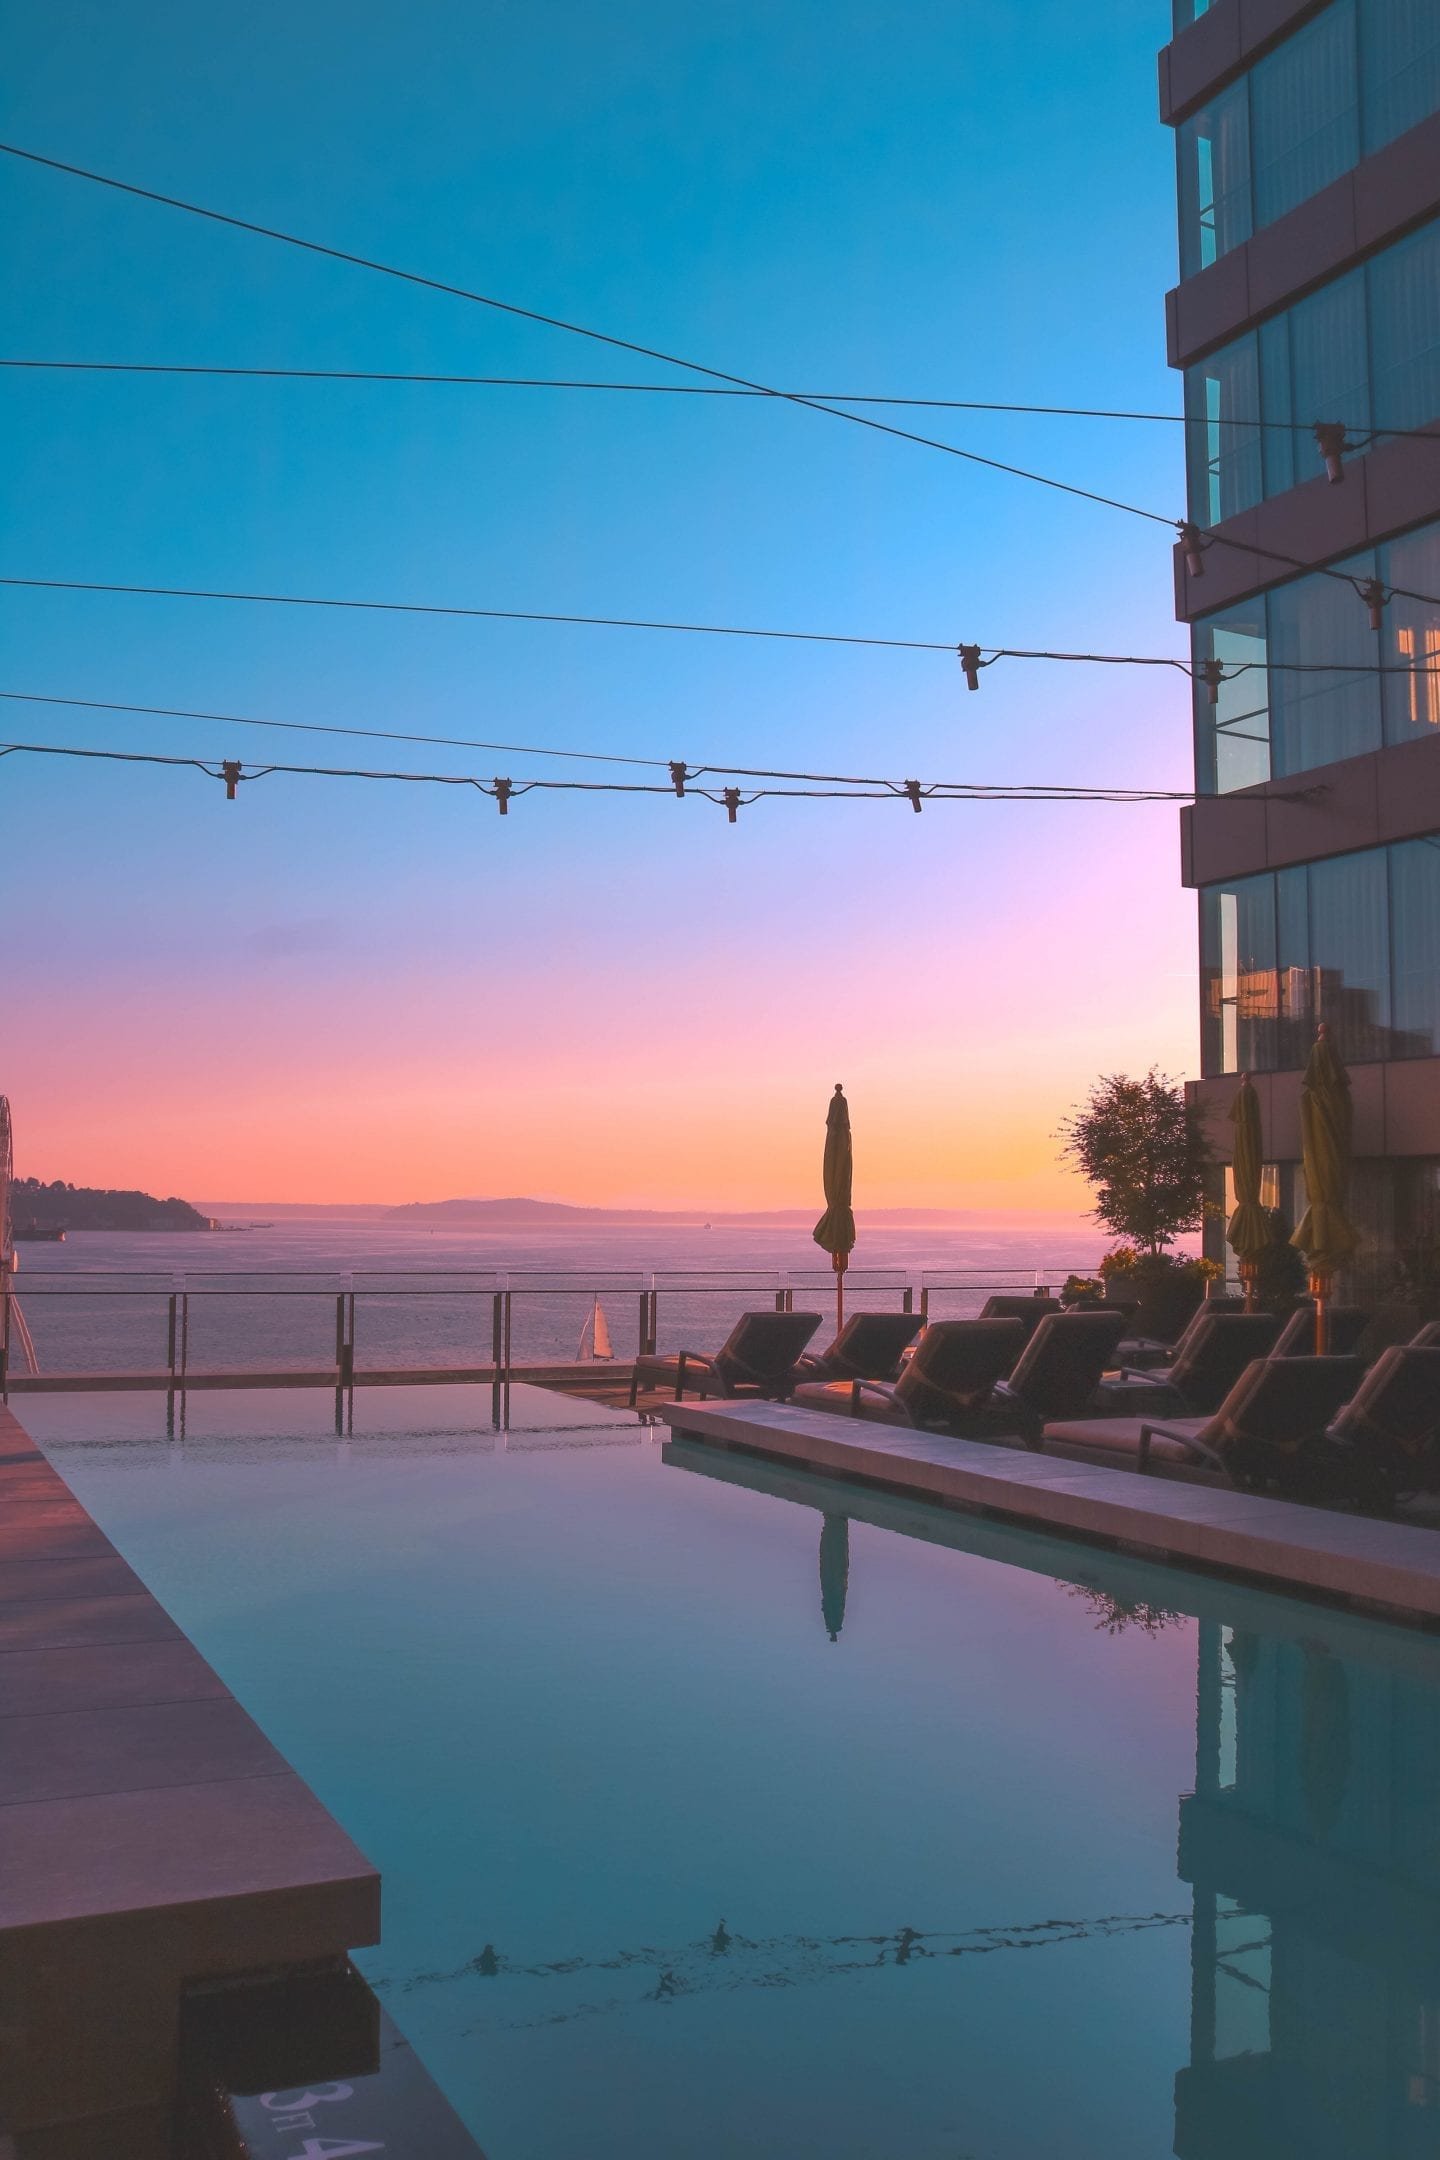 Where To Stay In Seattle: A Luxury Stay At The Four Seasons